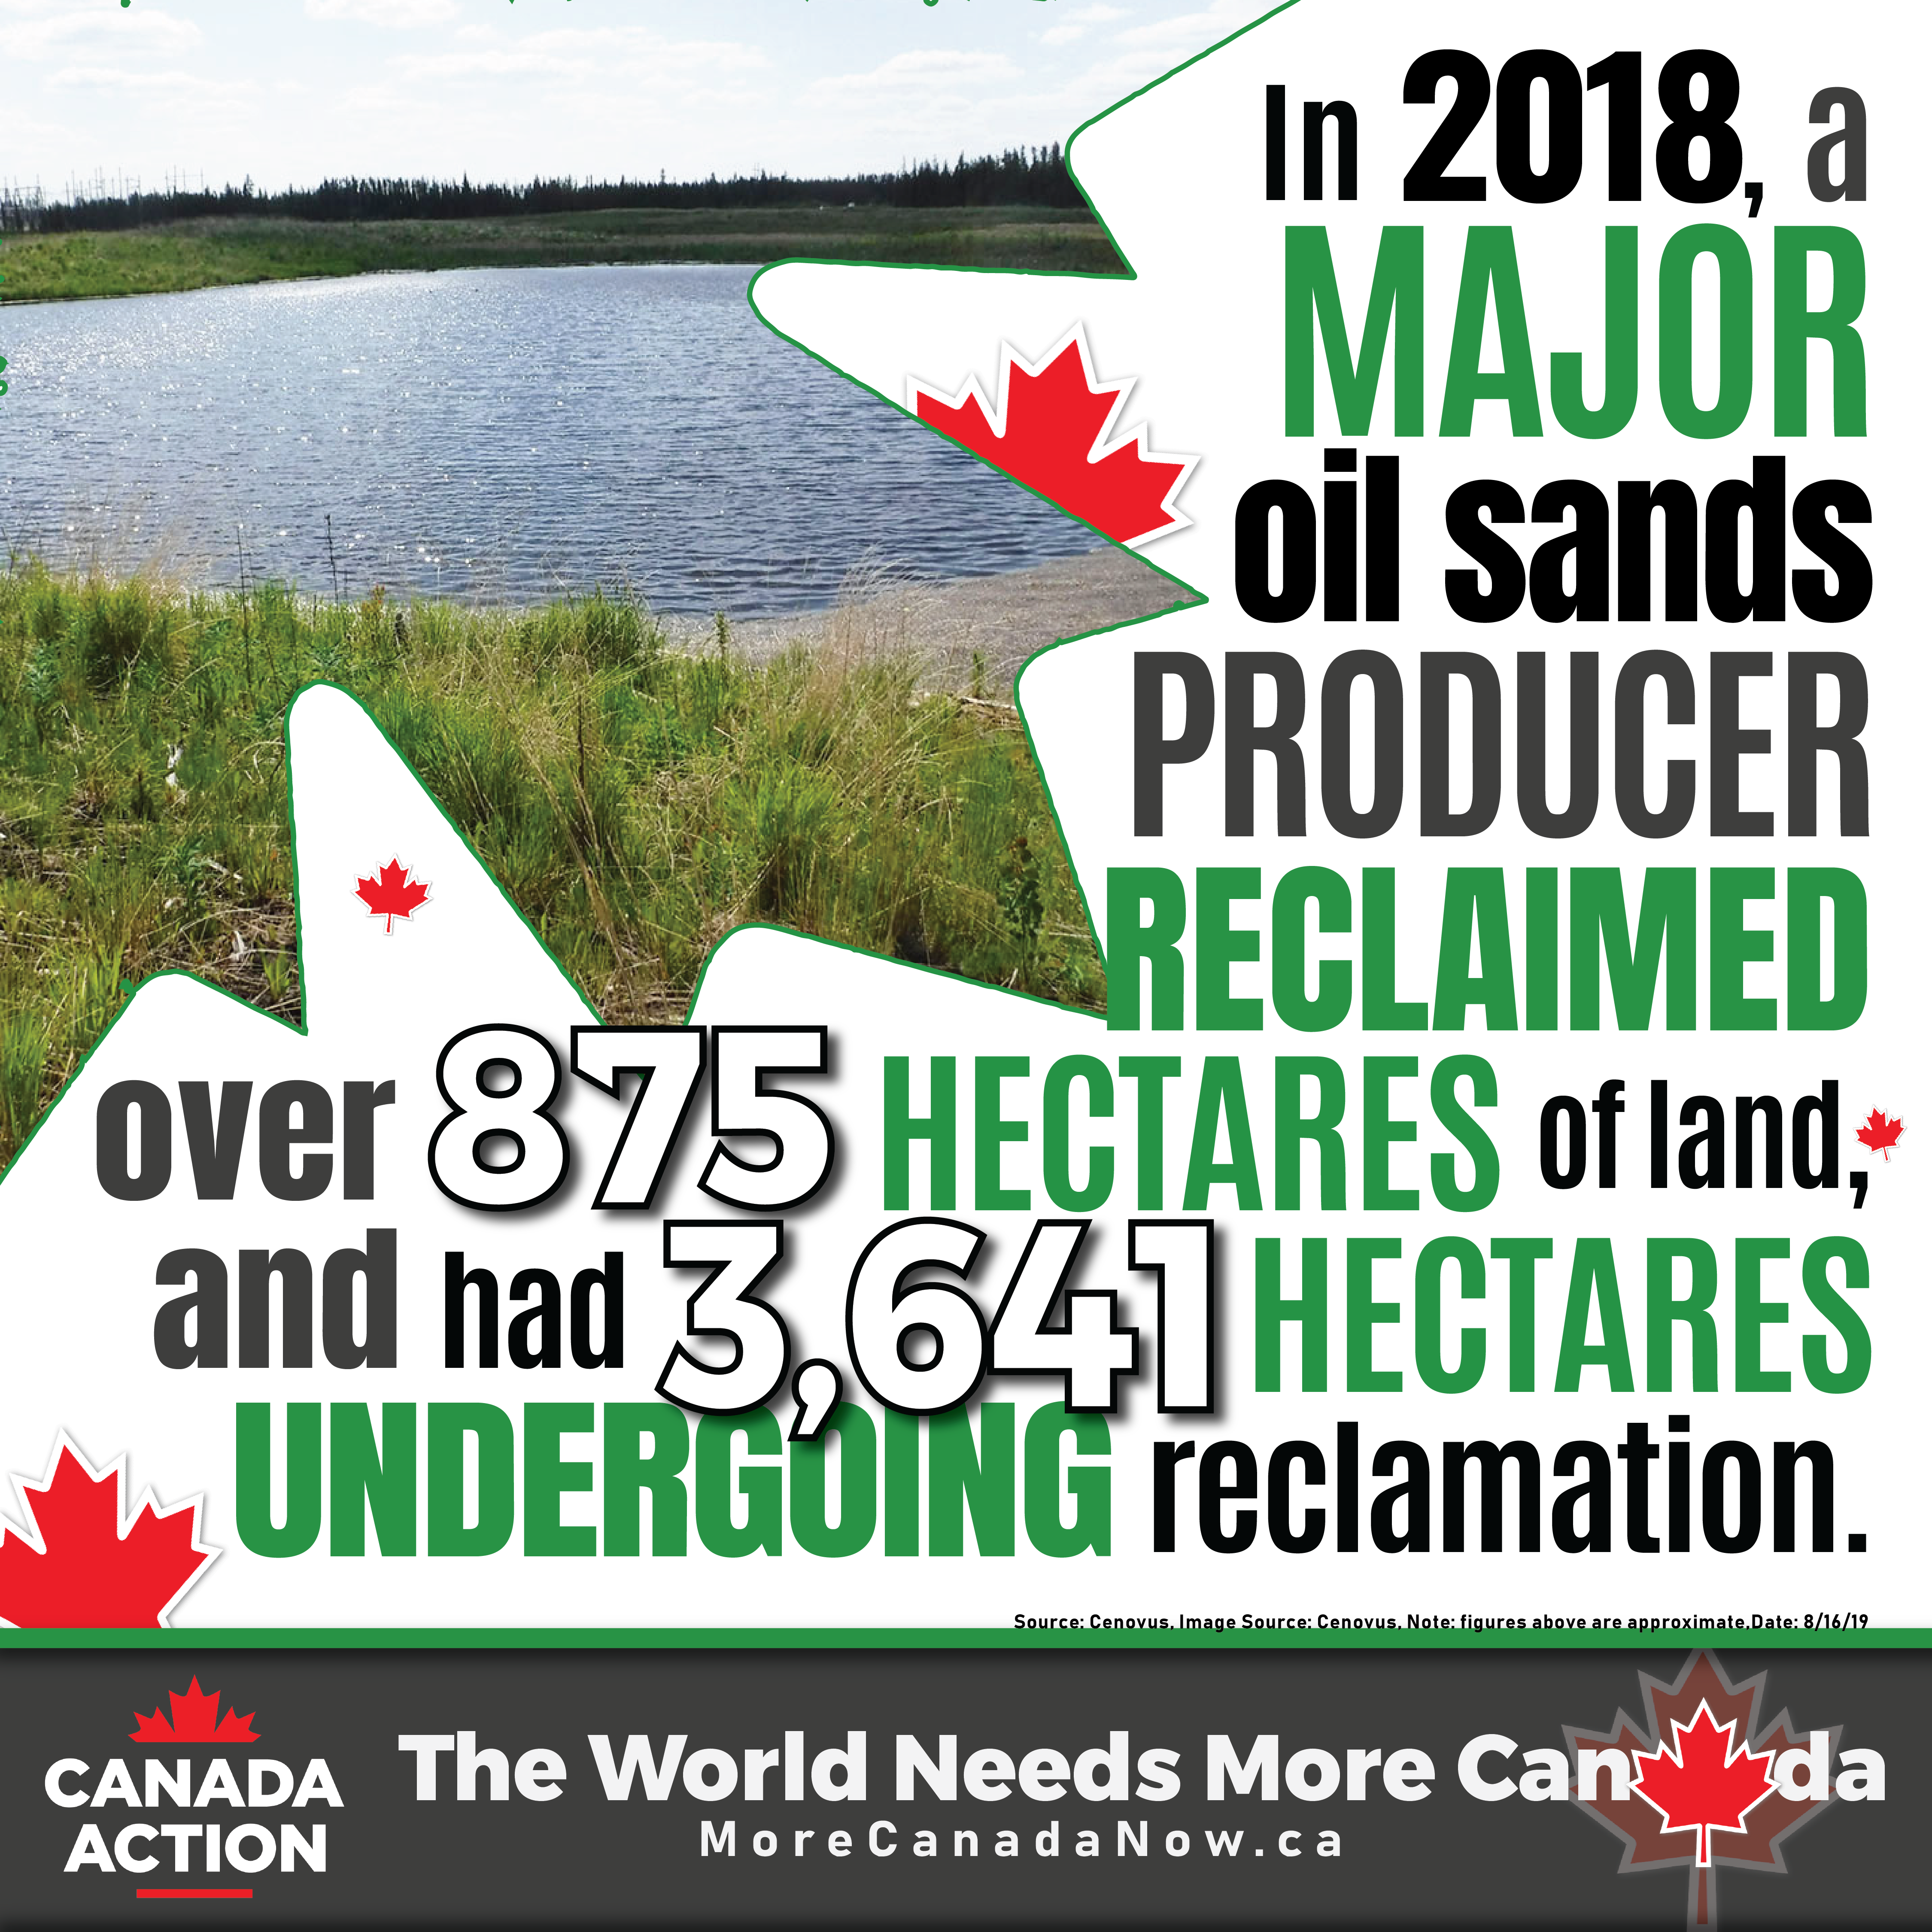 In 2018, a major oil sands producer reclaimed over 850 hectares, and had over 3,600 hectares undergoing reclamation